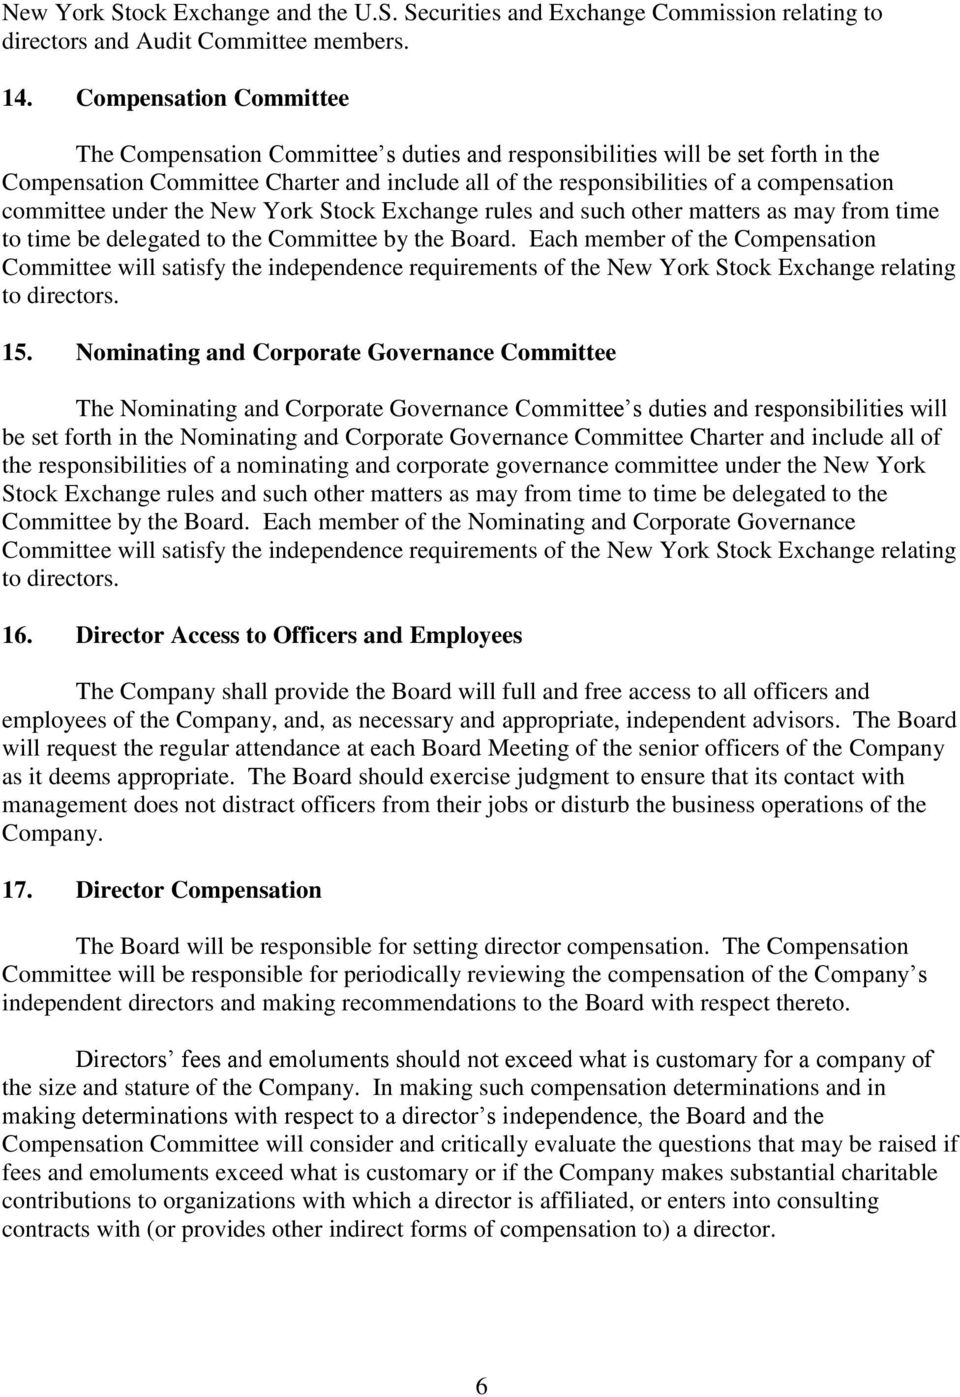 committee under the New York Stock Exchange rules and such other matters as may from time to time be delegated to the Committee by the Board.